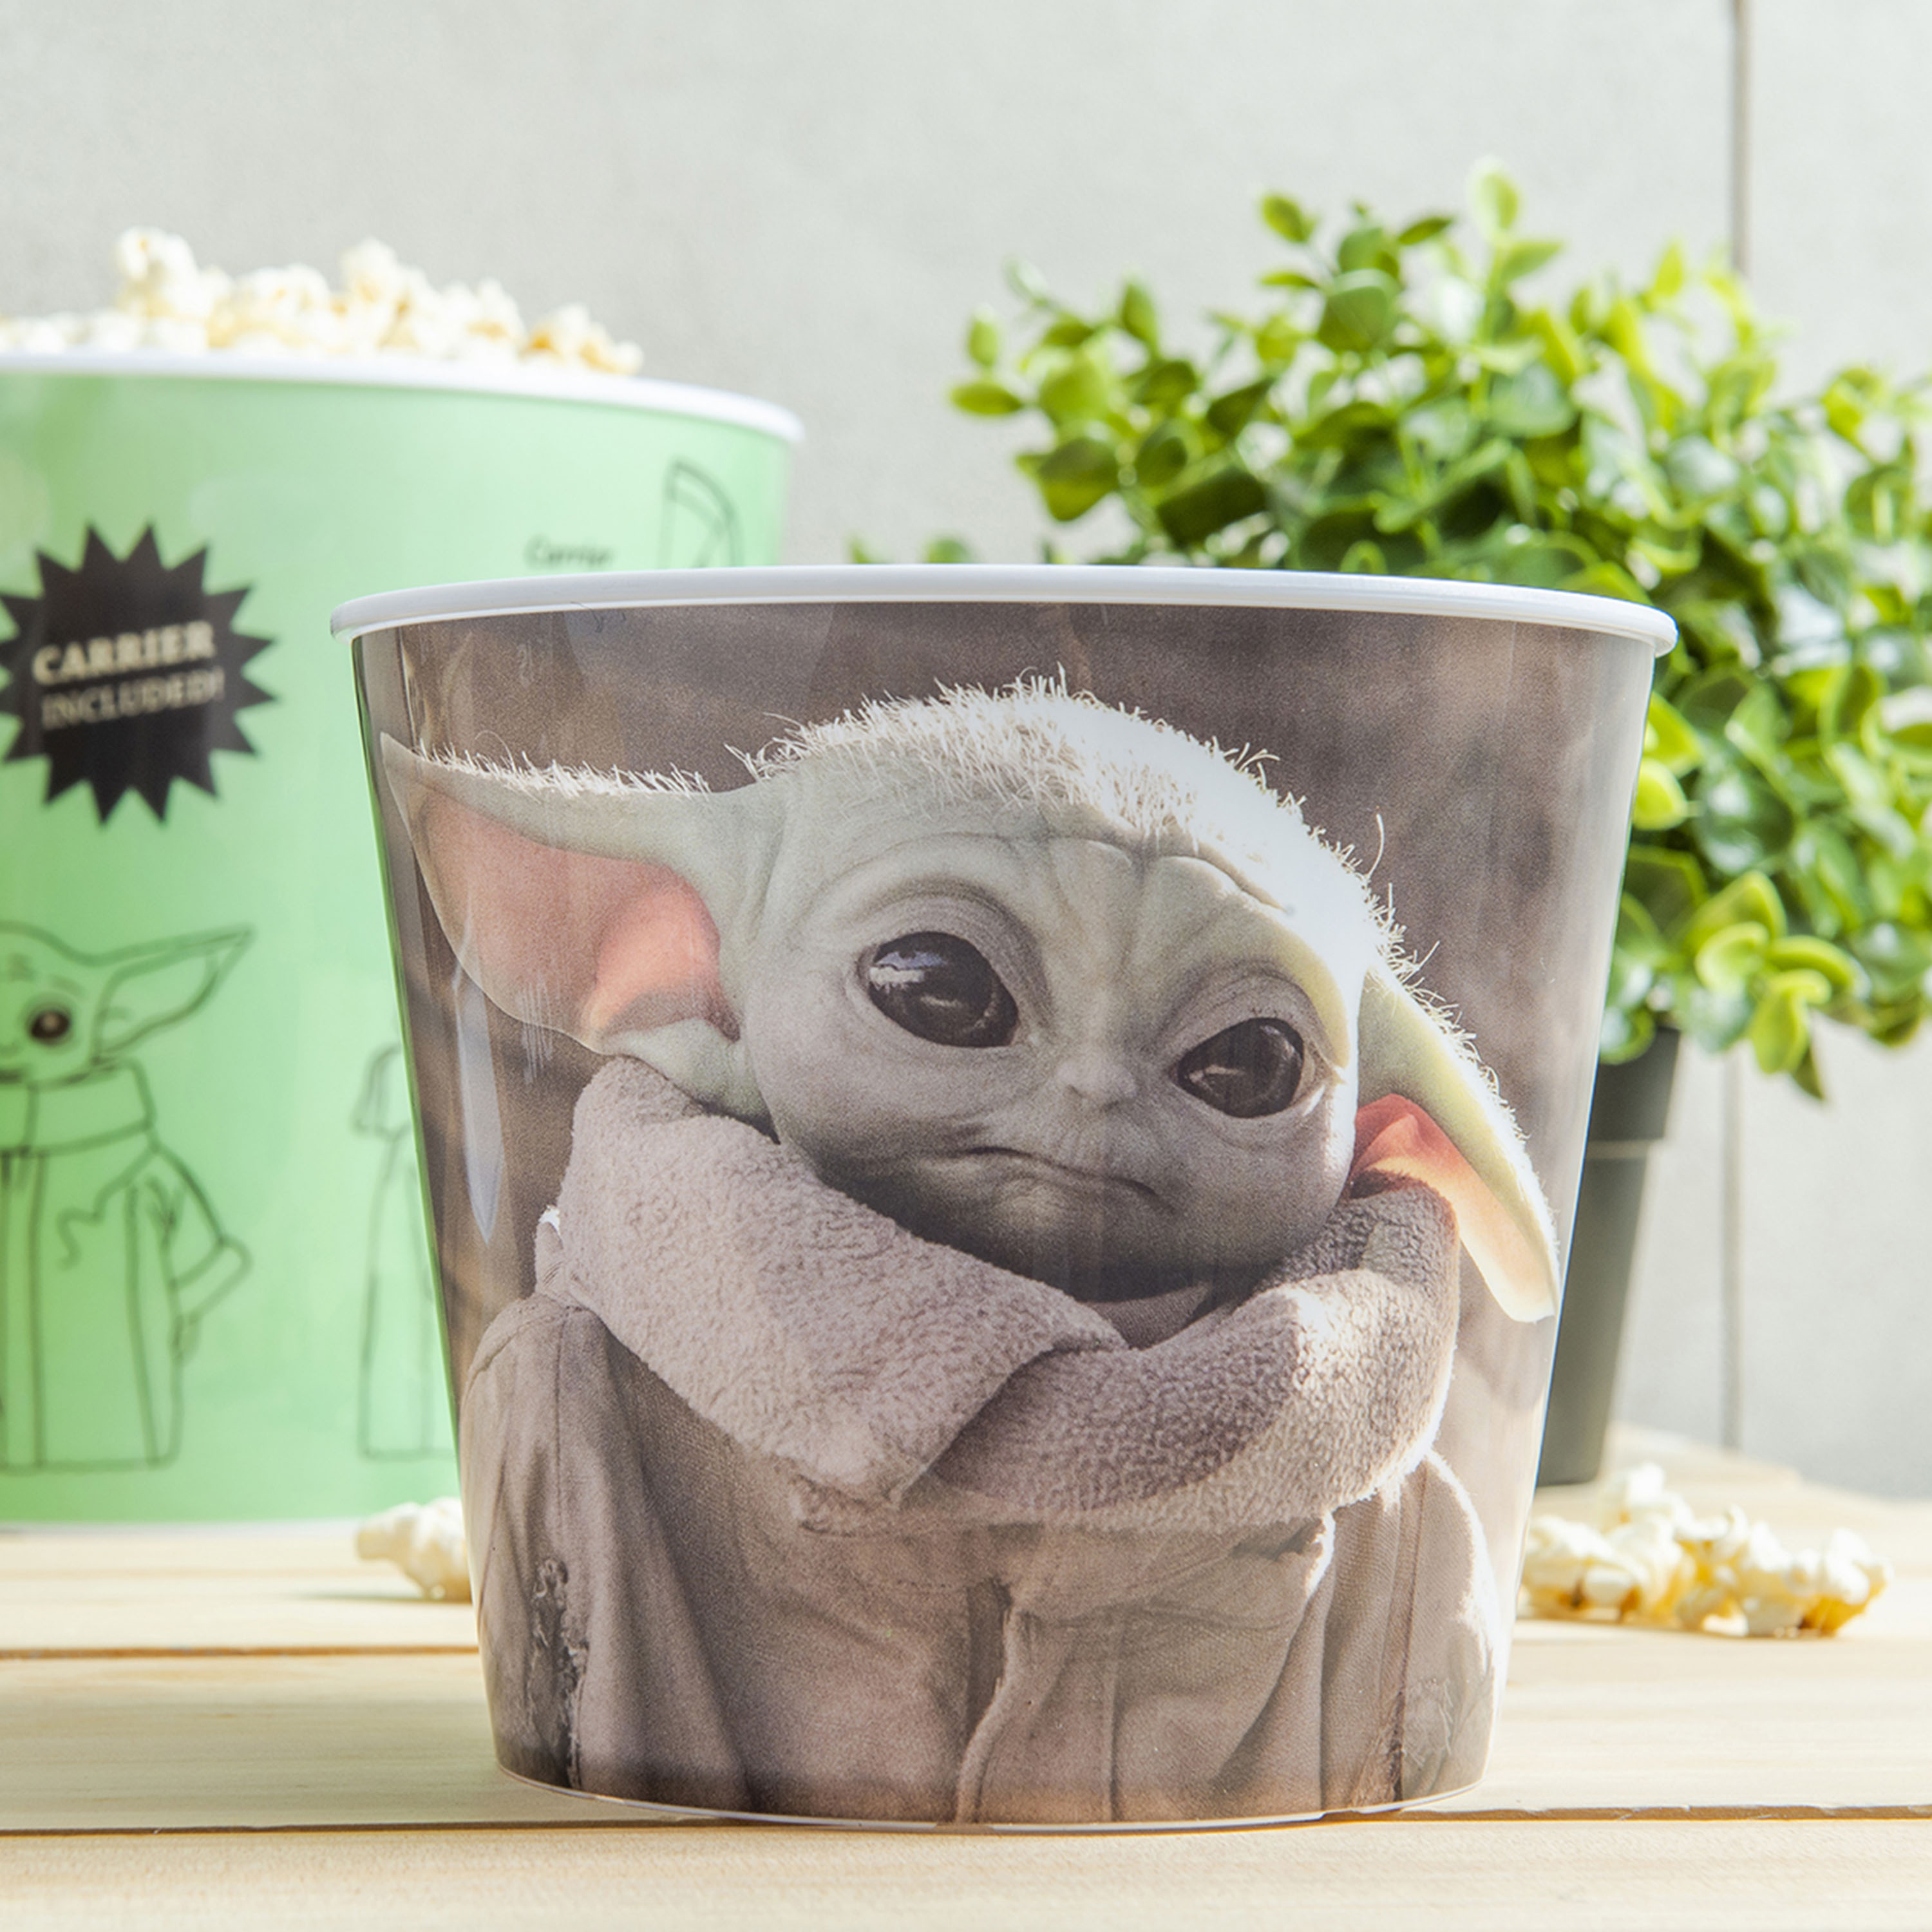 Star Wars: The Mandalorian Plastic Popcorn Container and Bowls, The Child (Baby Yoda), 5-piece set slideshow image 6